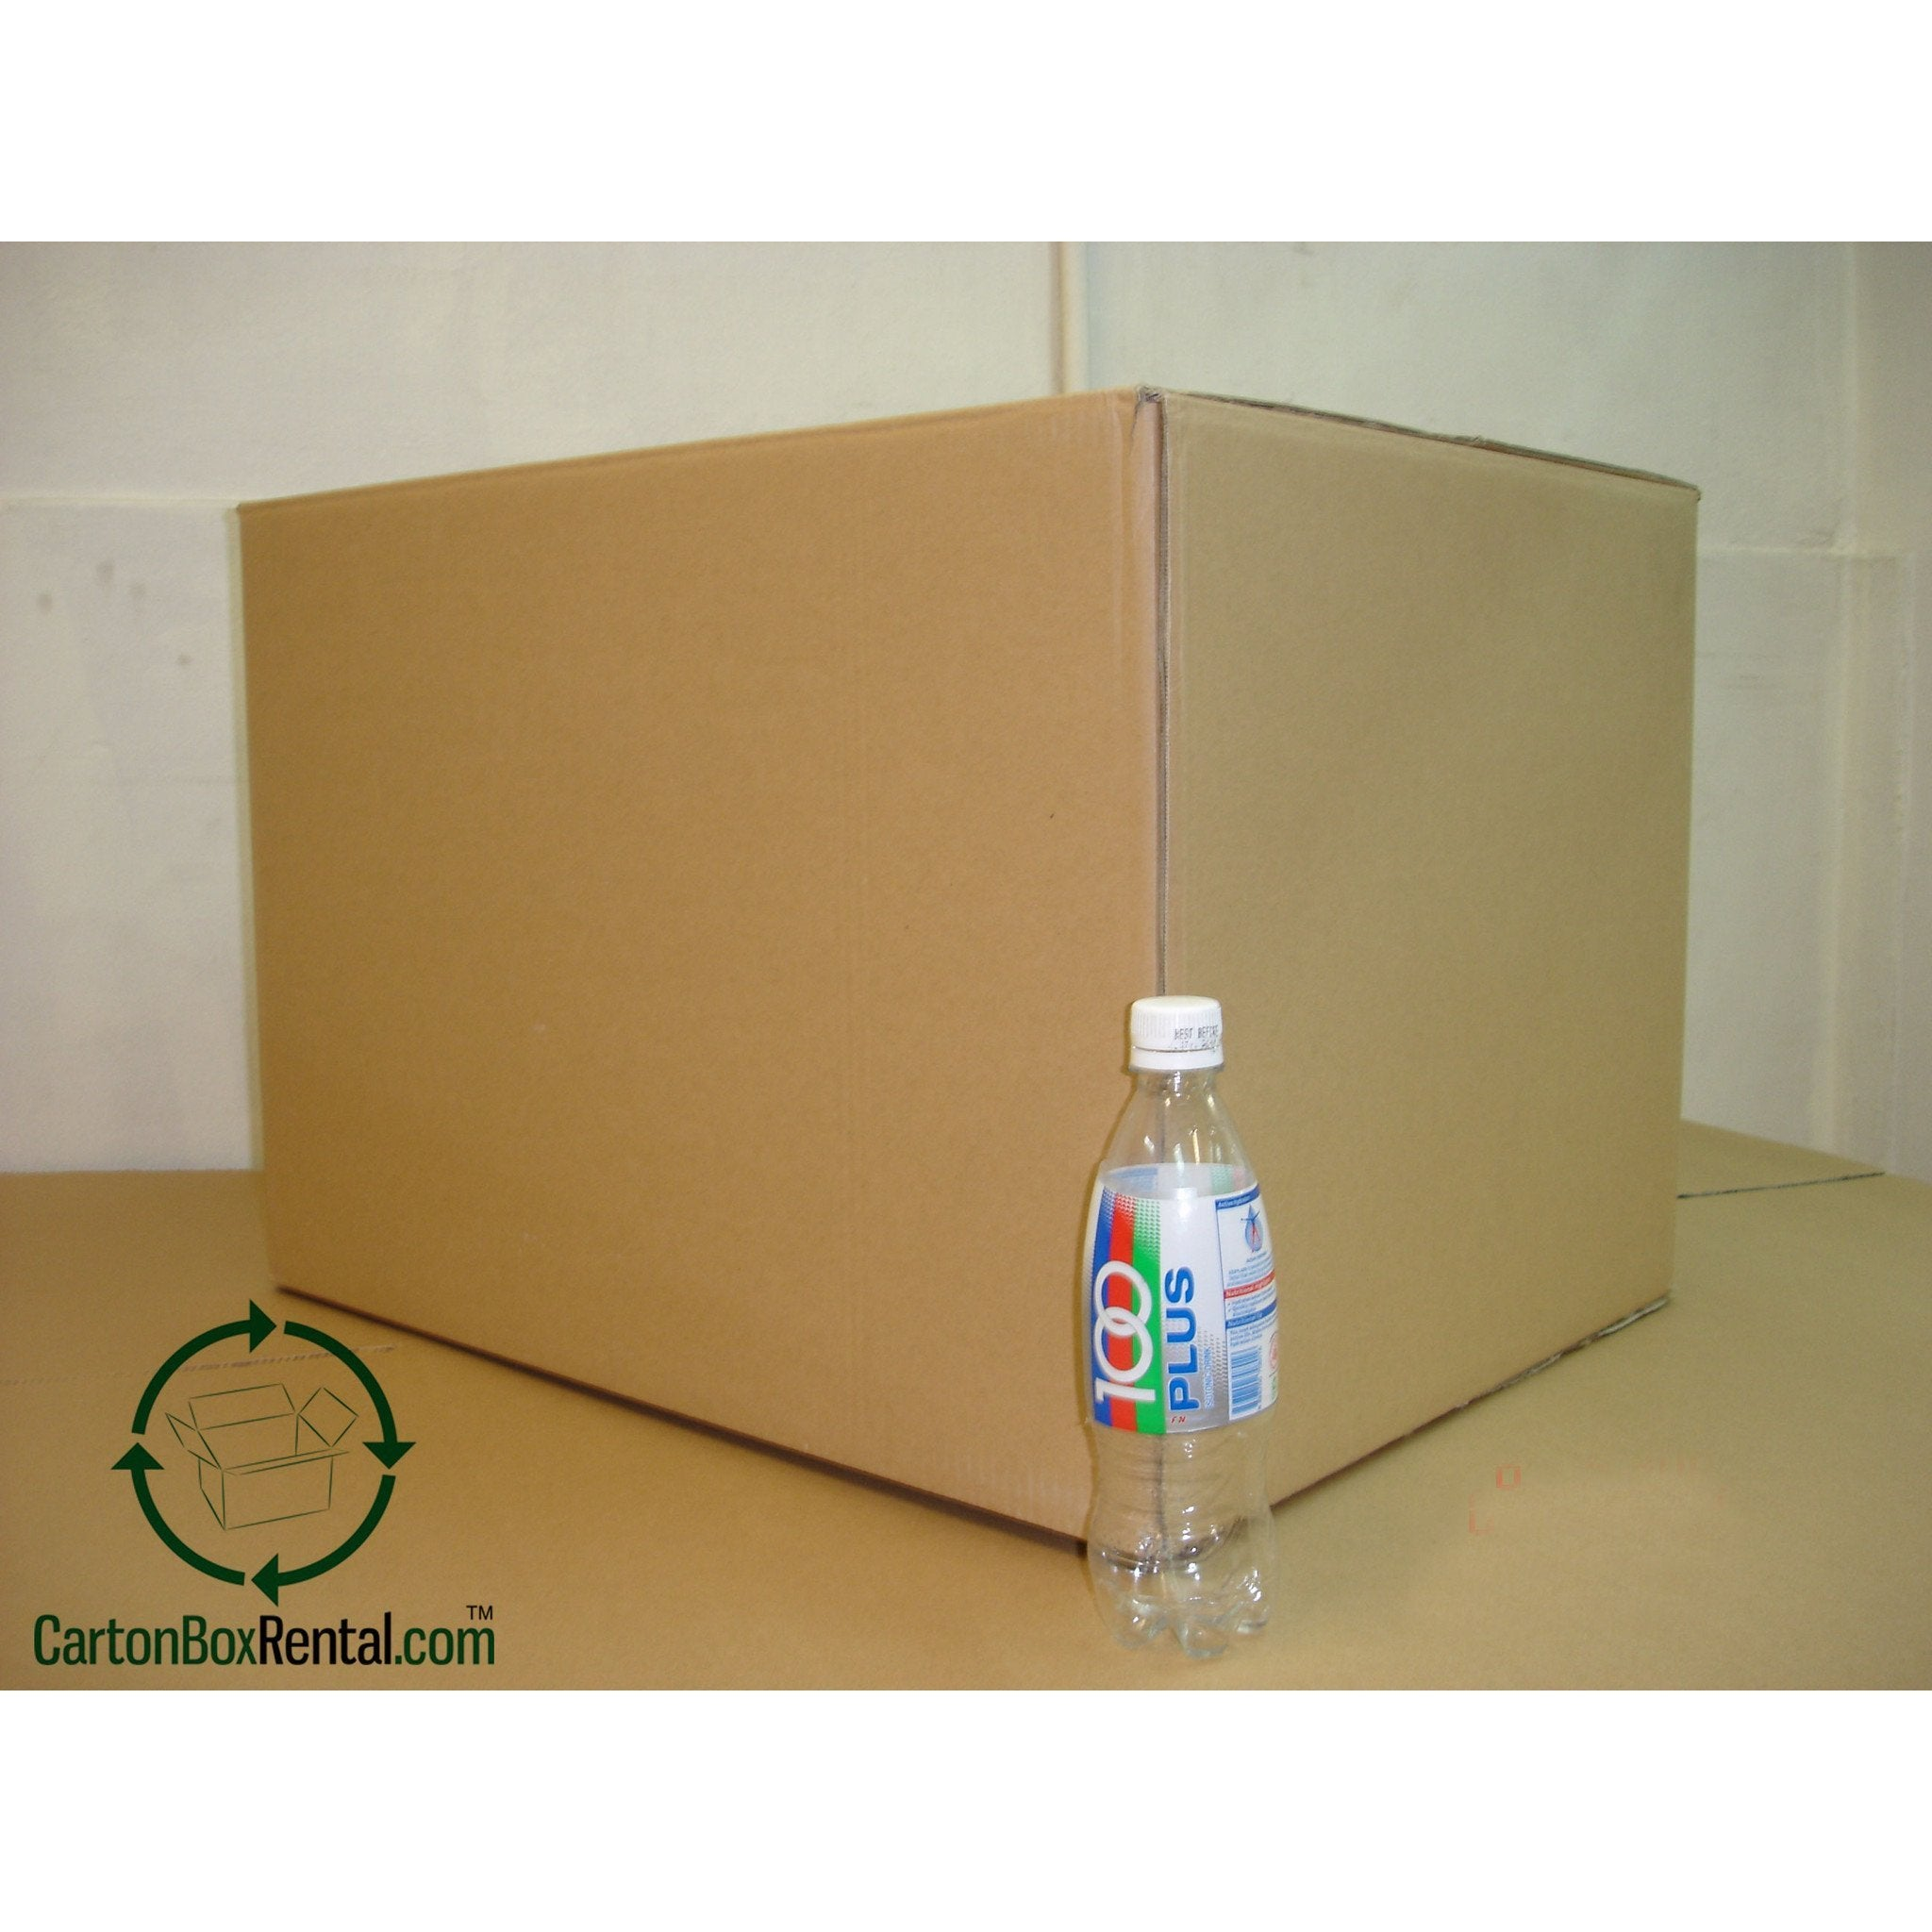 Extra Large XL Size New Carton Box Singapore